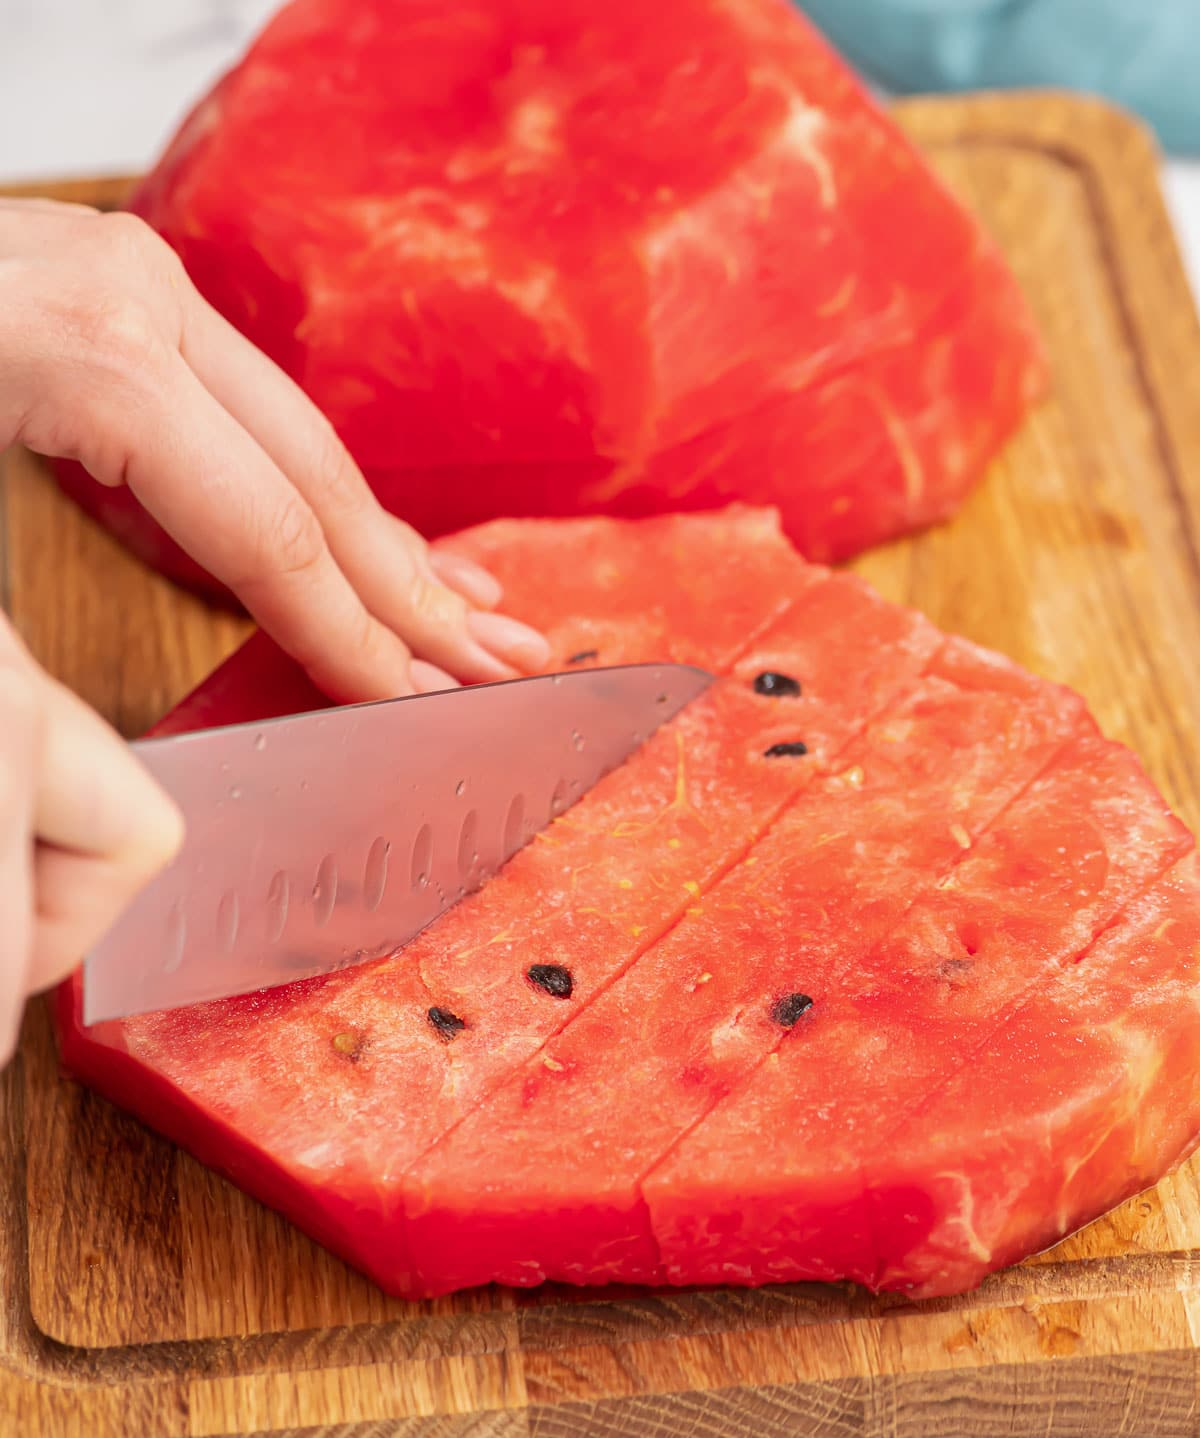 Watermelon being cut with a knife